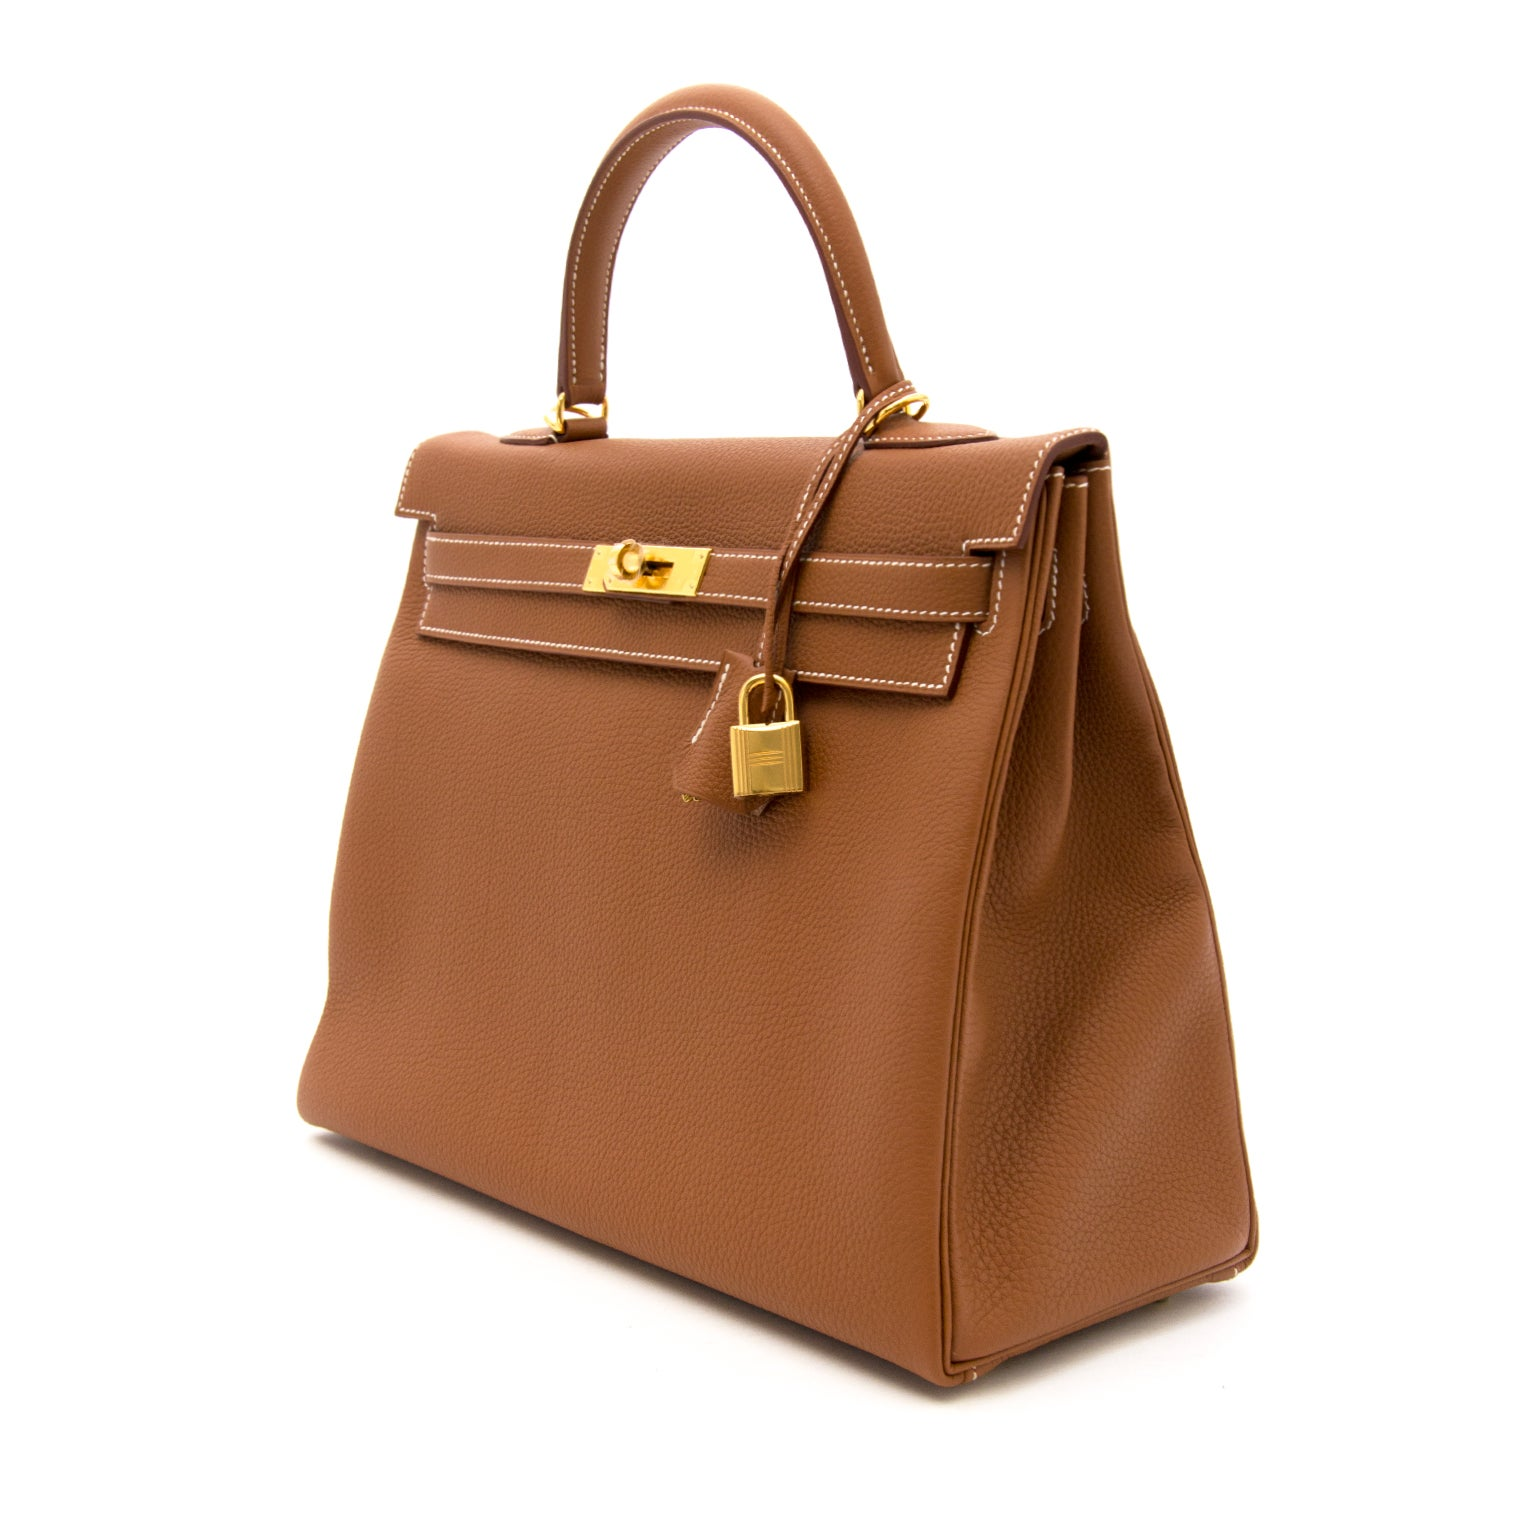 c6a9cdce89d2 Brand New Hermes kelly 35 Gold Togo GHW at 1stdibs